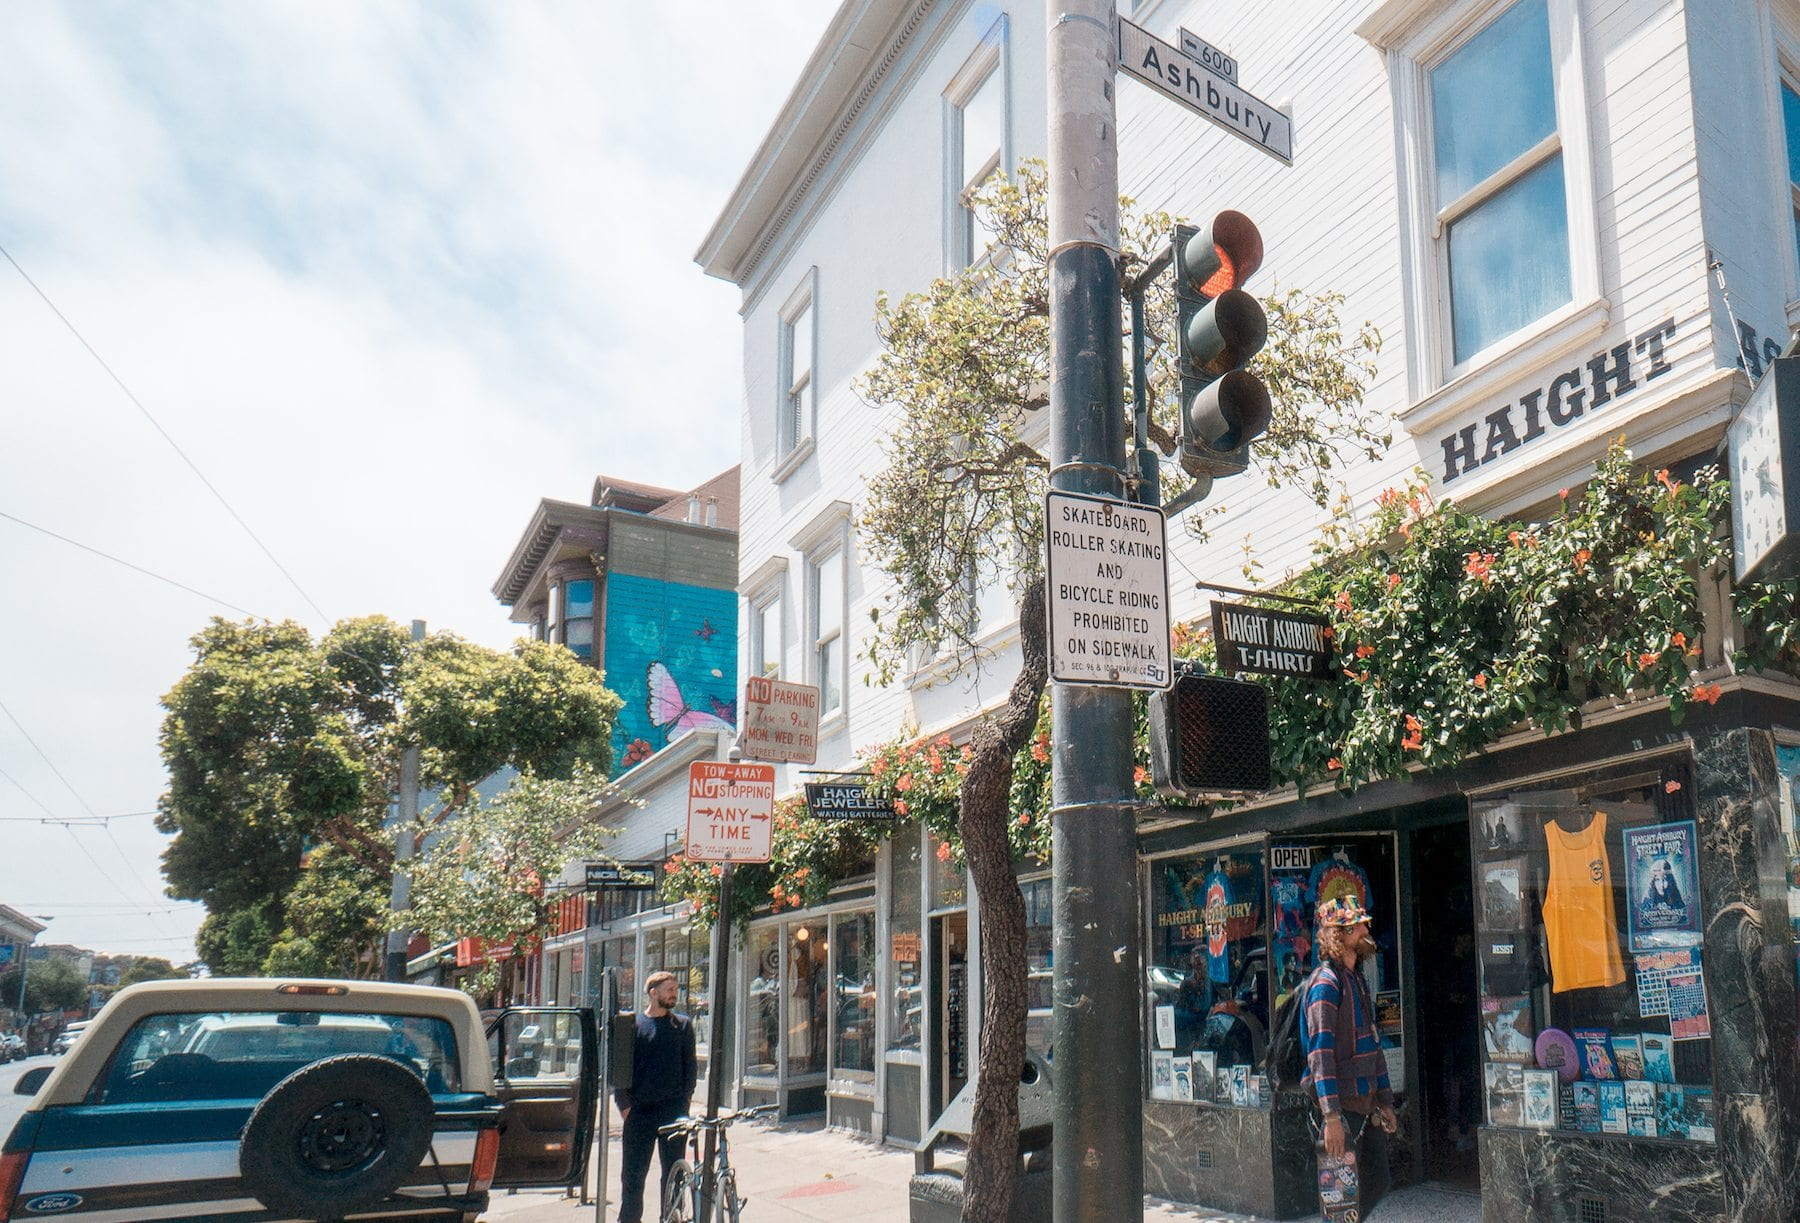 Haight & Ashbury. Photo: Justin Wong, 49miles.com.